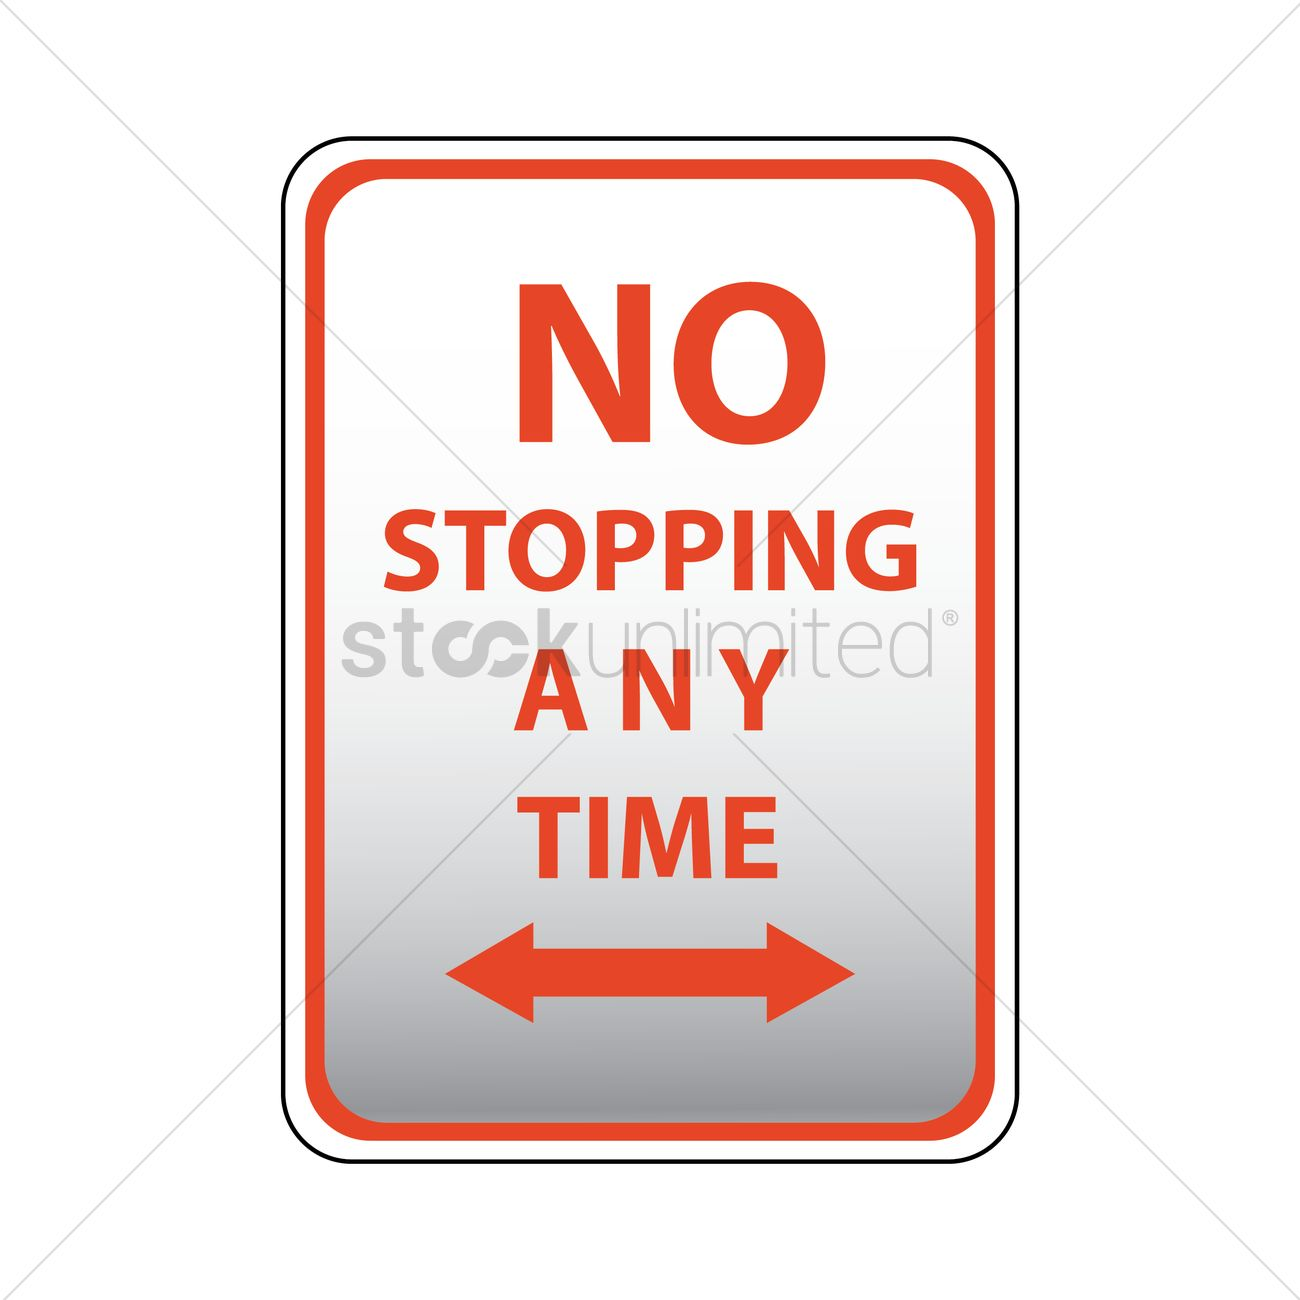 No stopping any time road sign Vector Image.